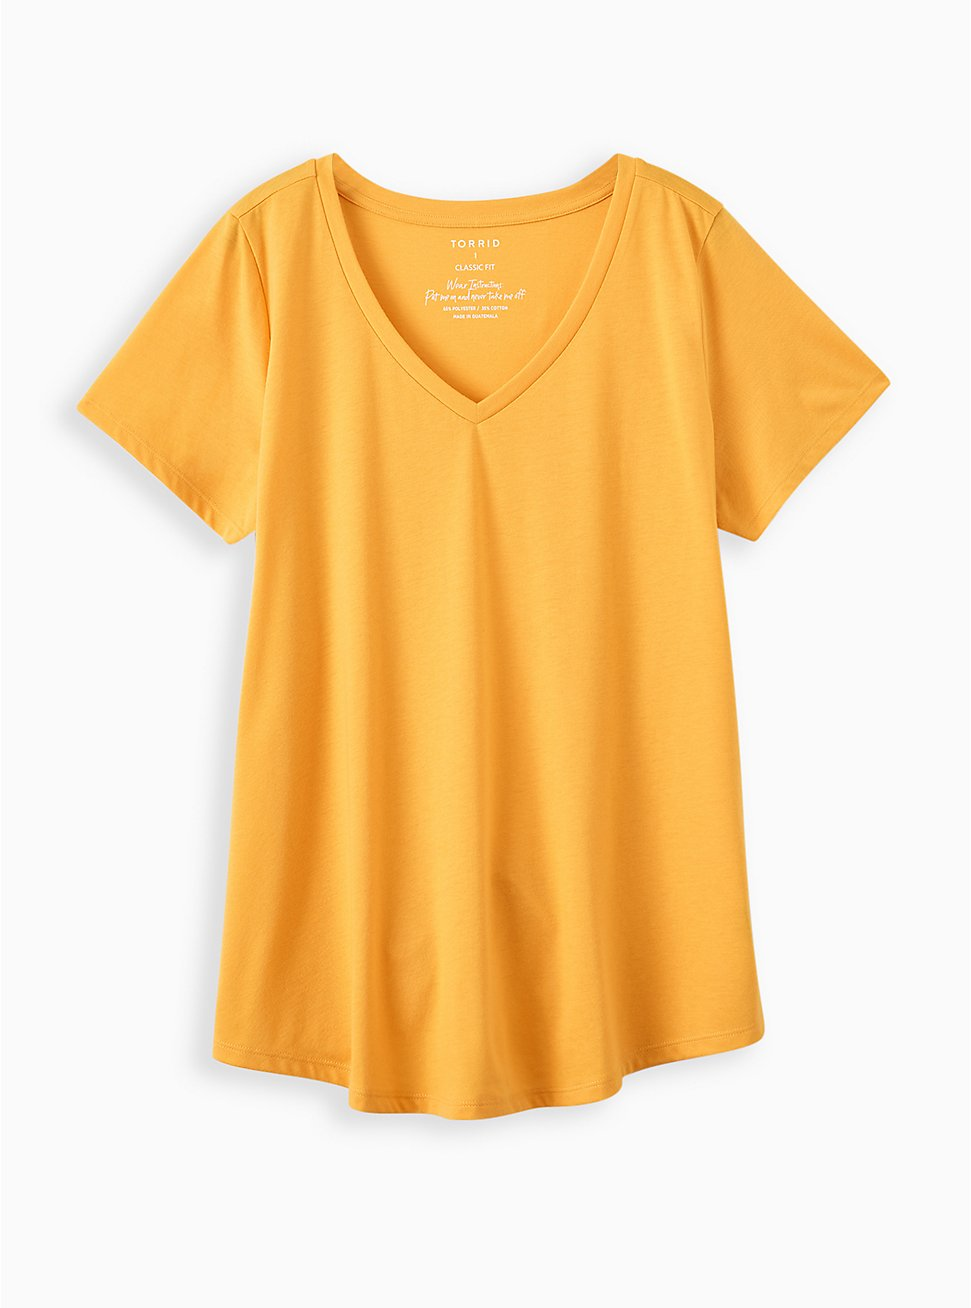 Girlfriend Tee - Signature Jersey Mustard Yellow, OLD GOLD, hi-res